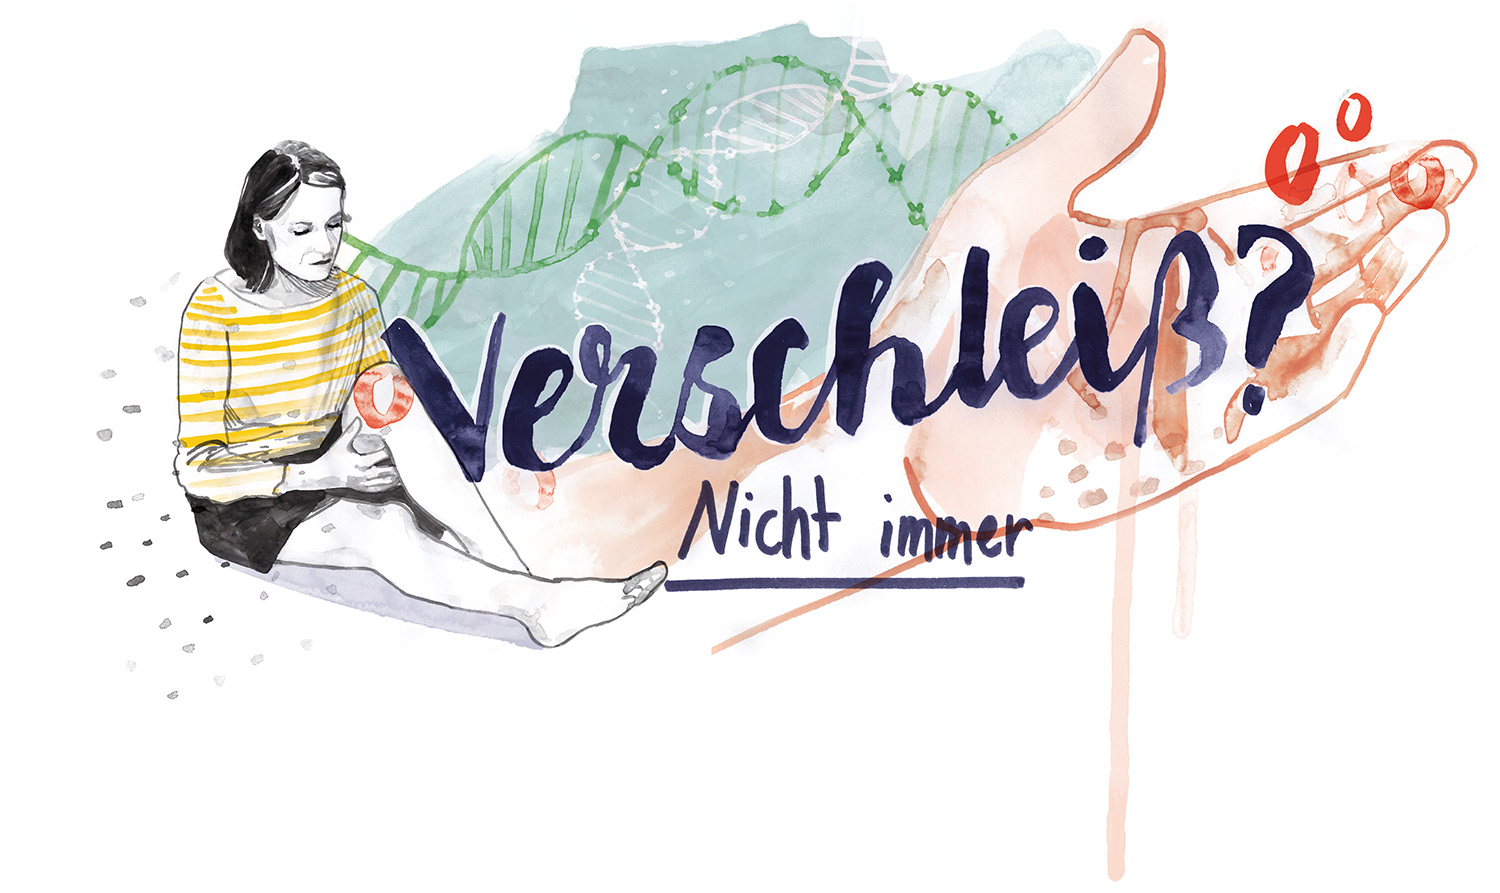 Illustrationen in der Brigitte Wir